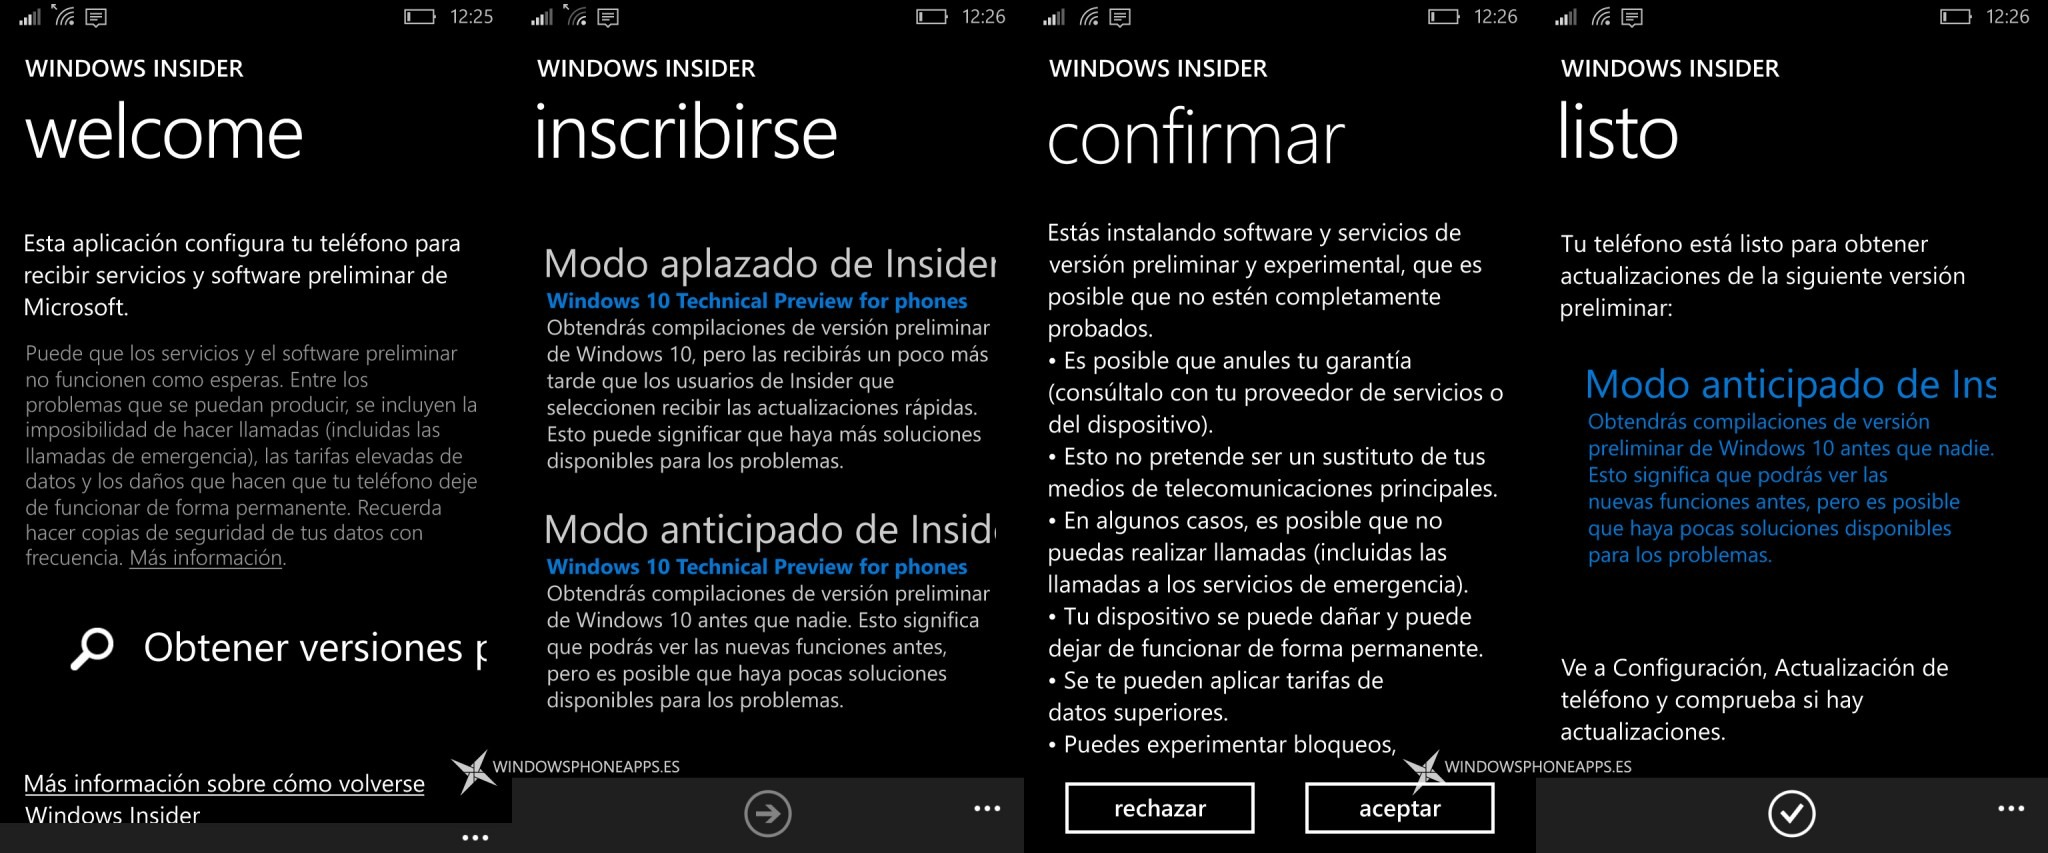 windows insider en espanol